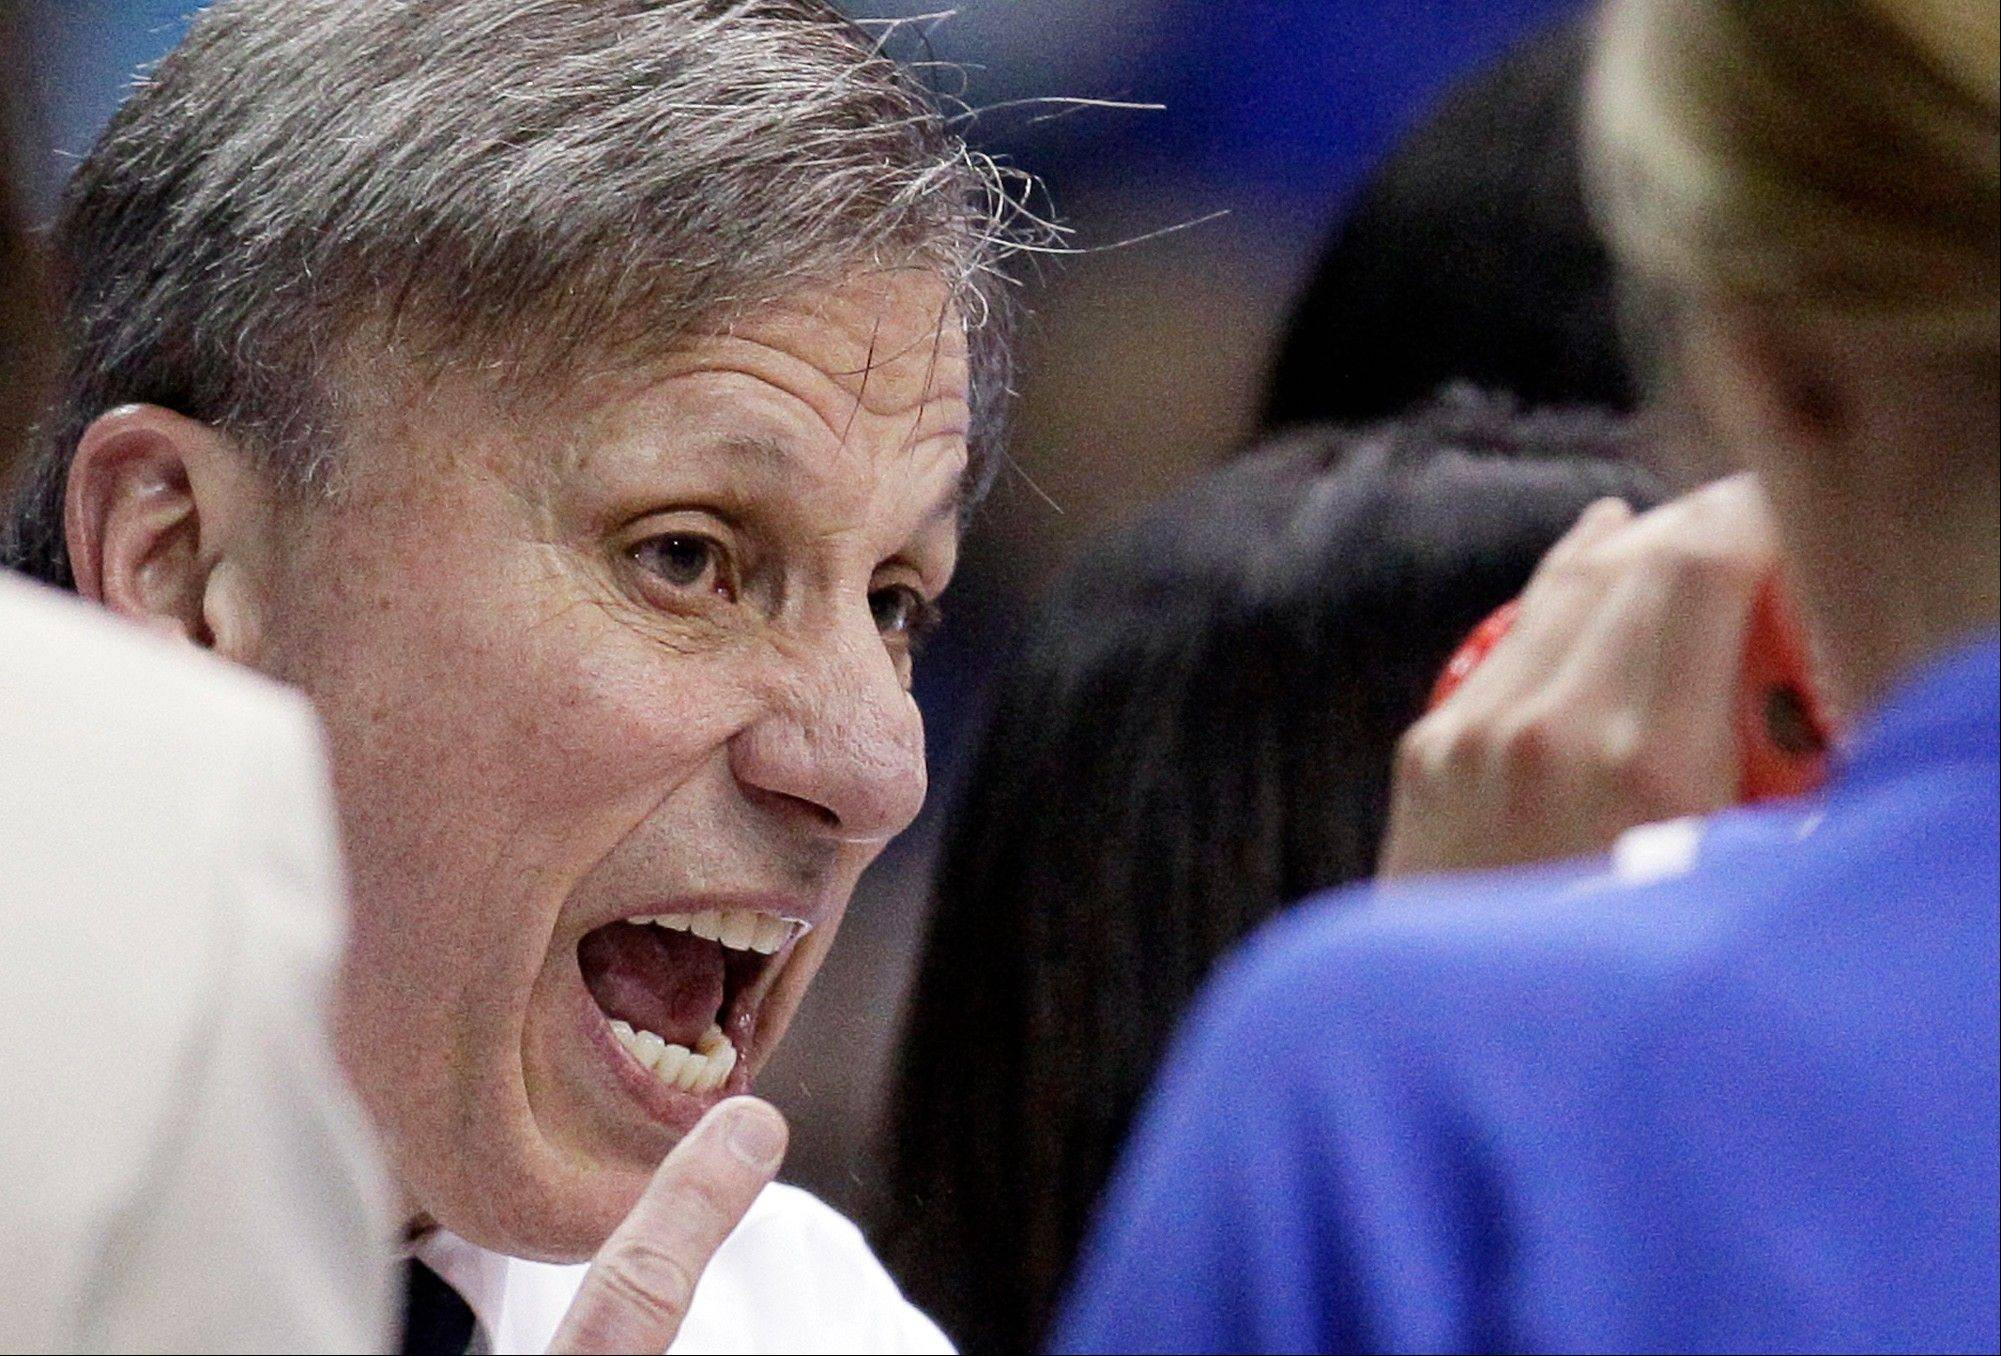 DePaul head coach Doug Bruno yells his team during the second half of an NCAA tournament first-round women's college basketball game against BYU in Rosemont, Ill., Saturday, March 17, 2012. DePaul won 59-55.